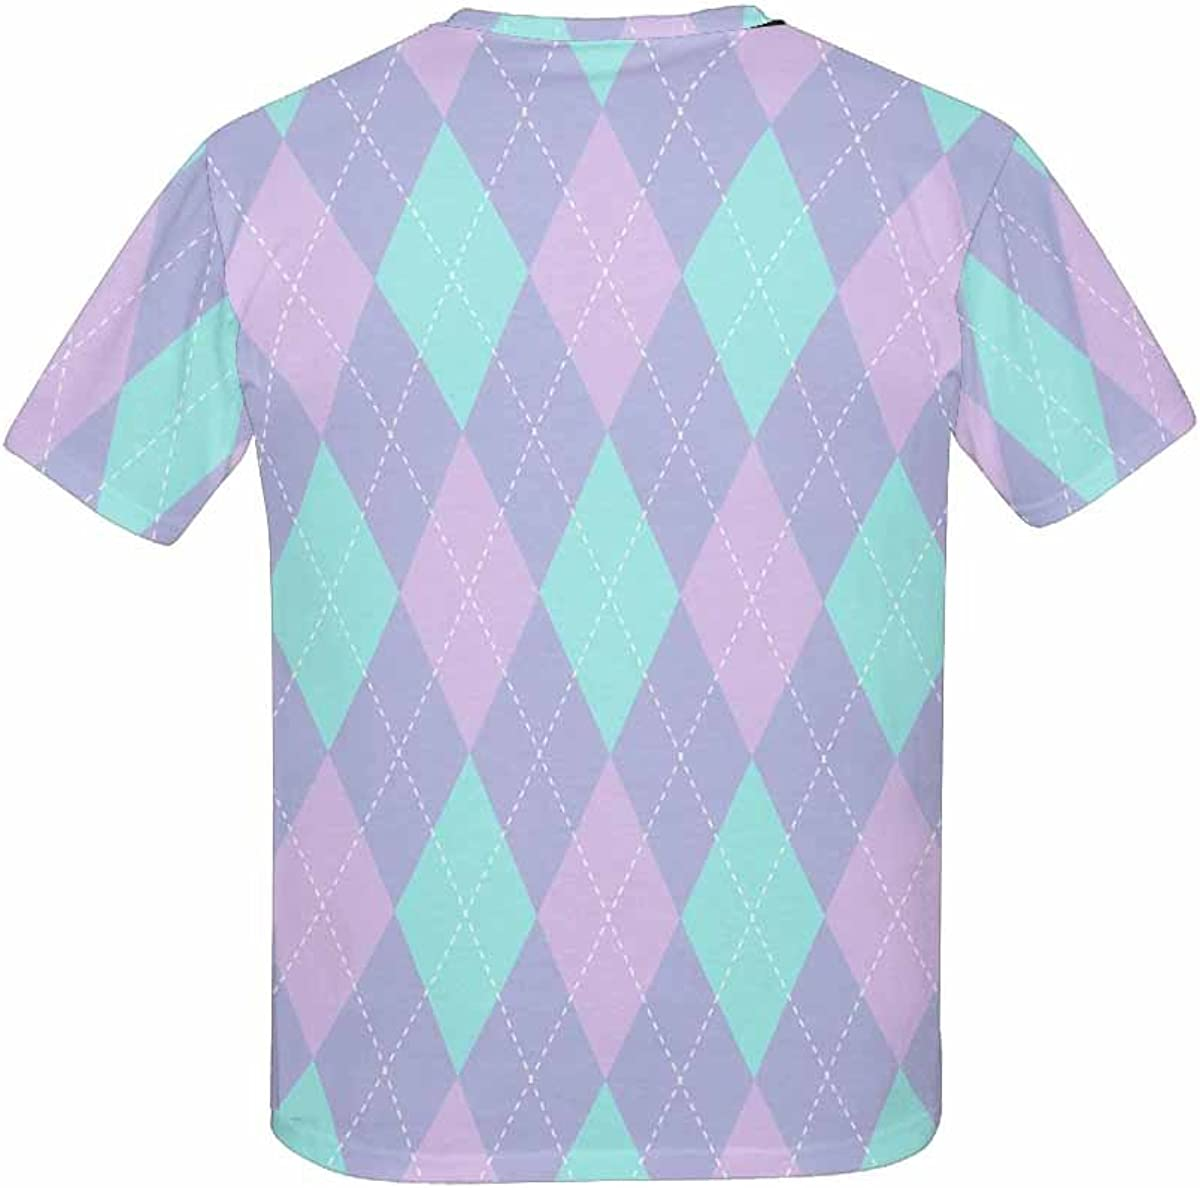 XS-XL INTERESTPRINT Kids T-Shirts Lavender Gray /& Pale Pink